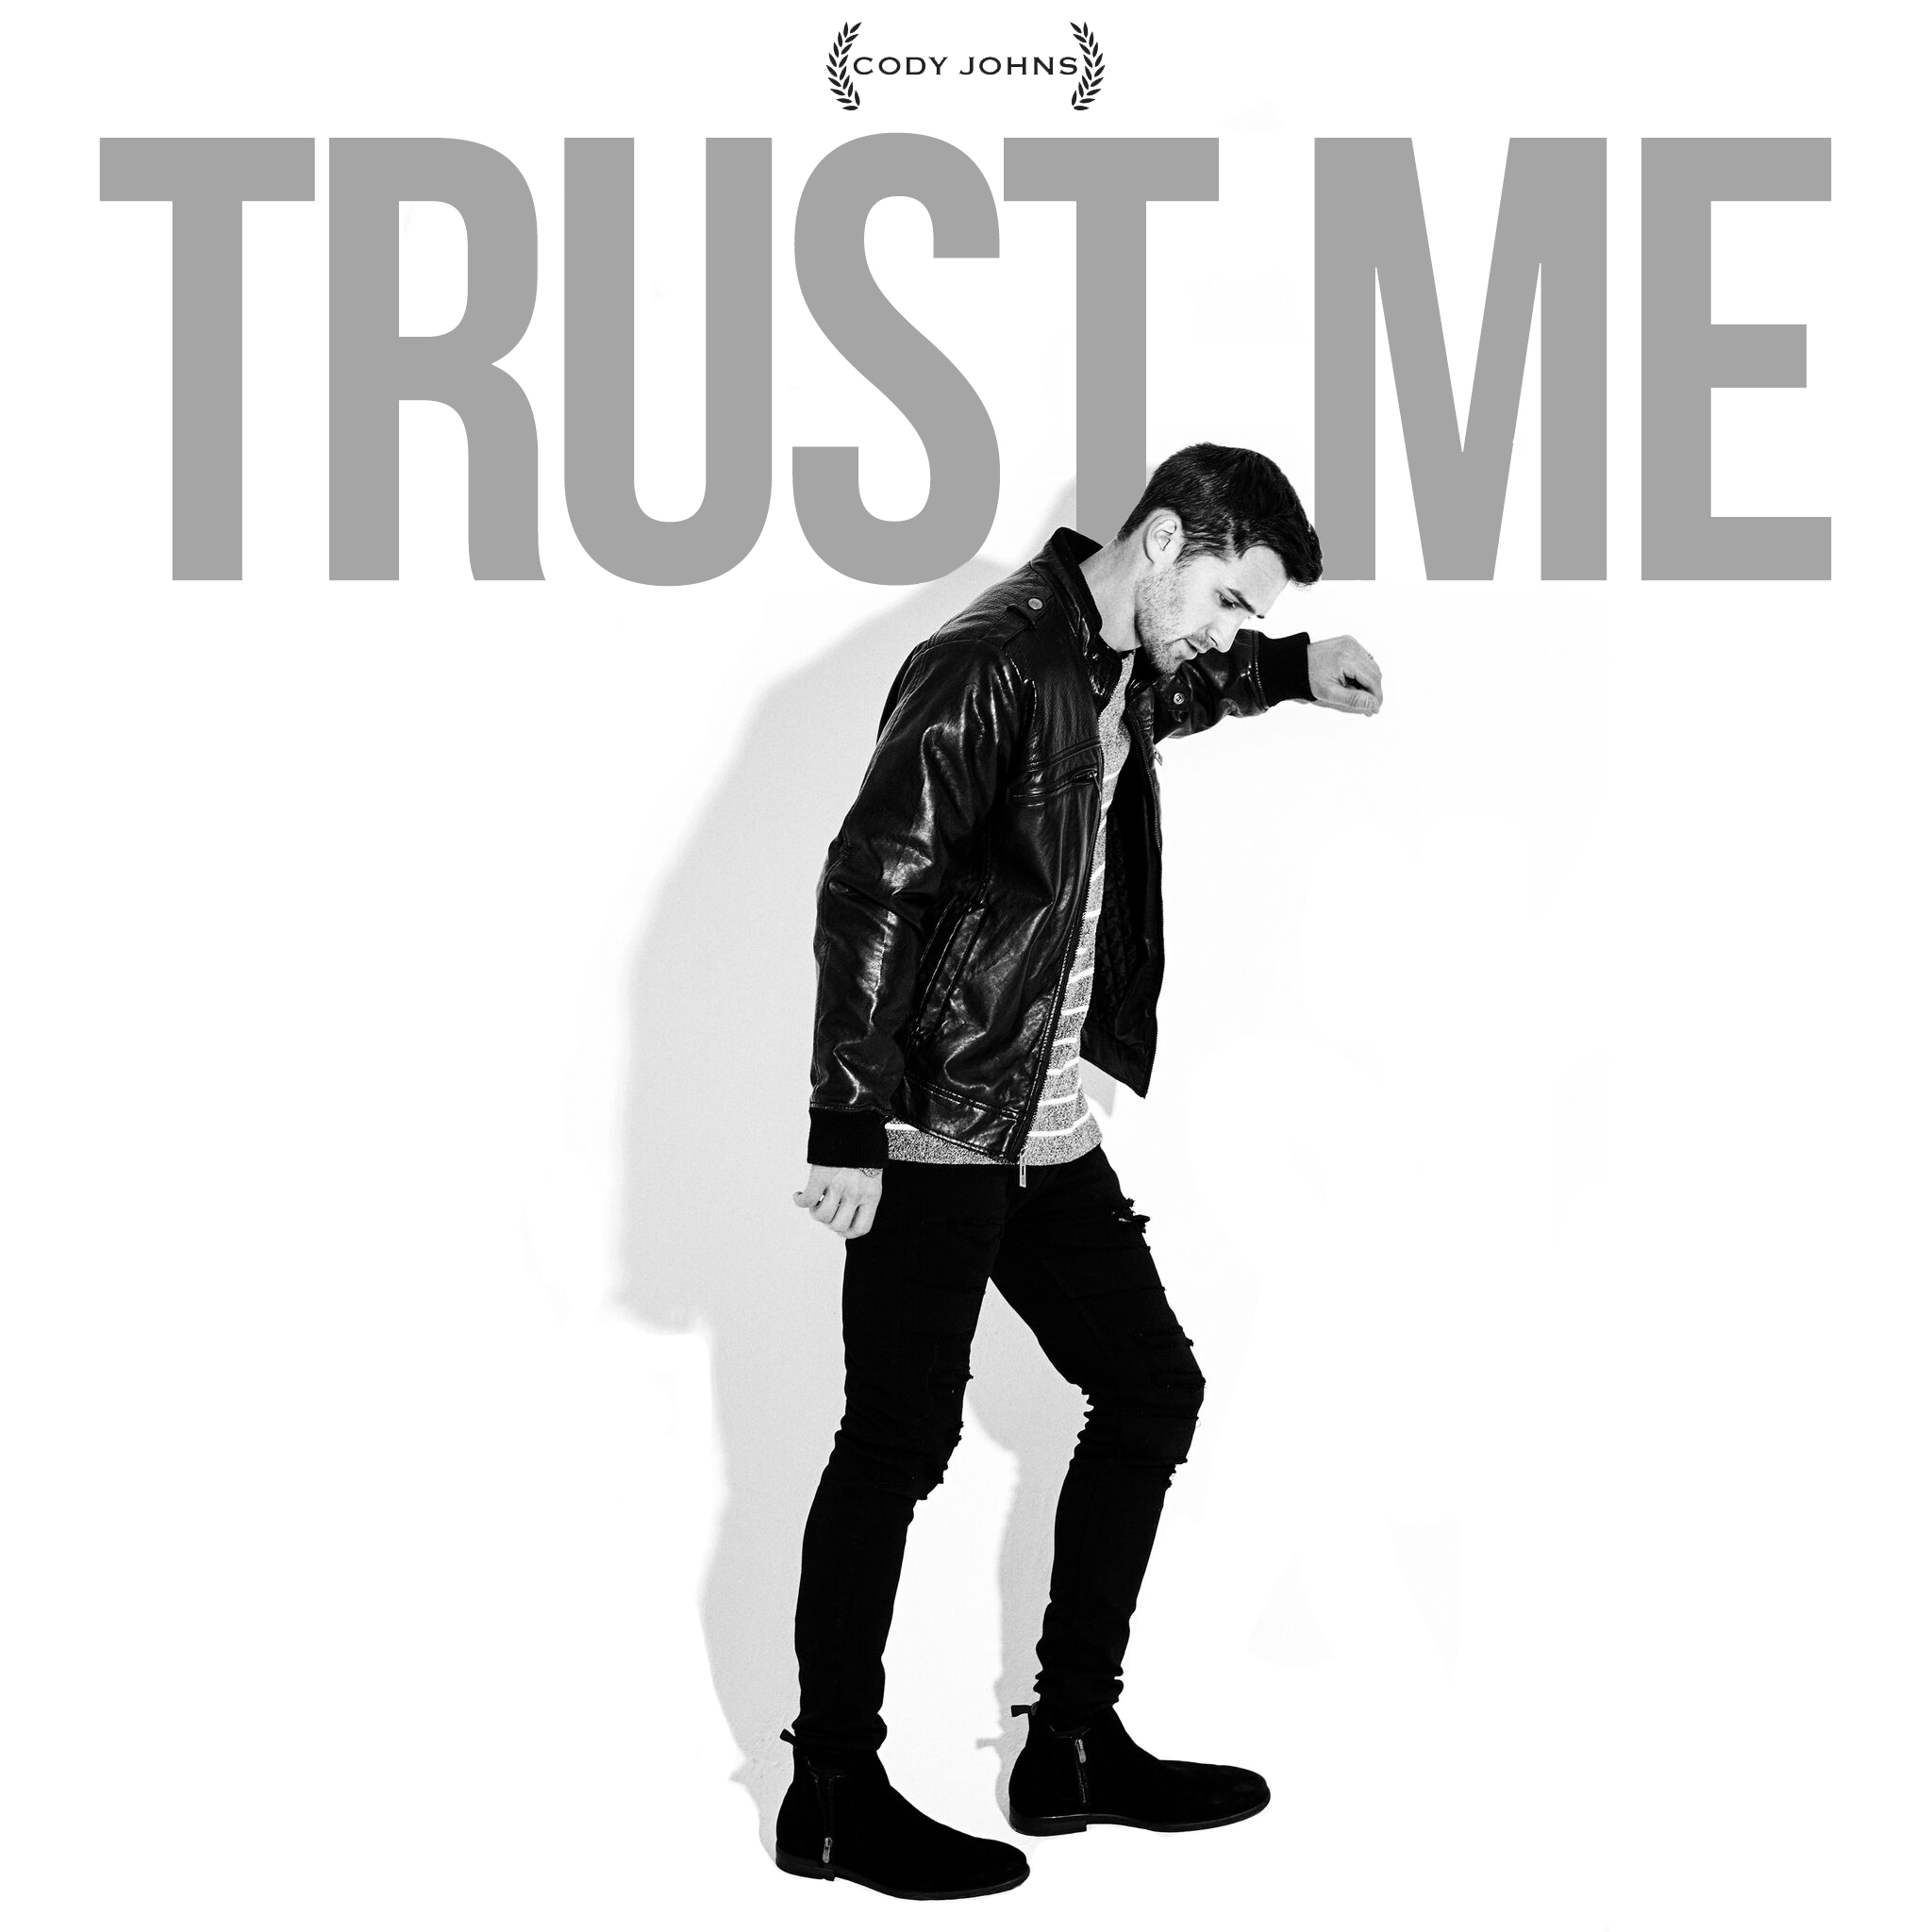 Cody-Johns-Releases-New-Single-Trust-Me-Exclusive